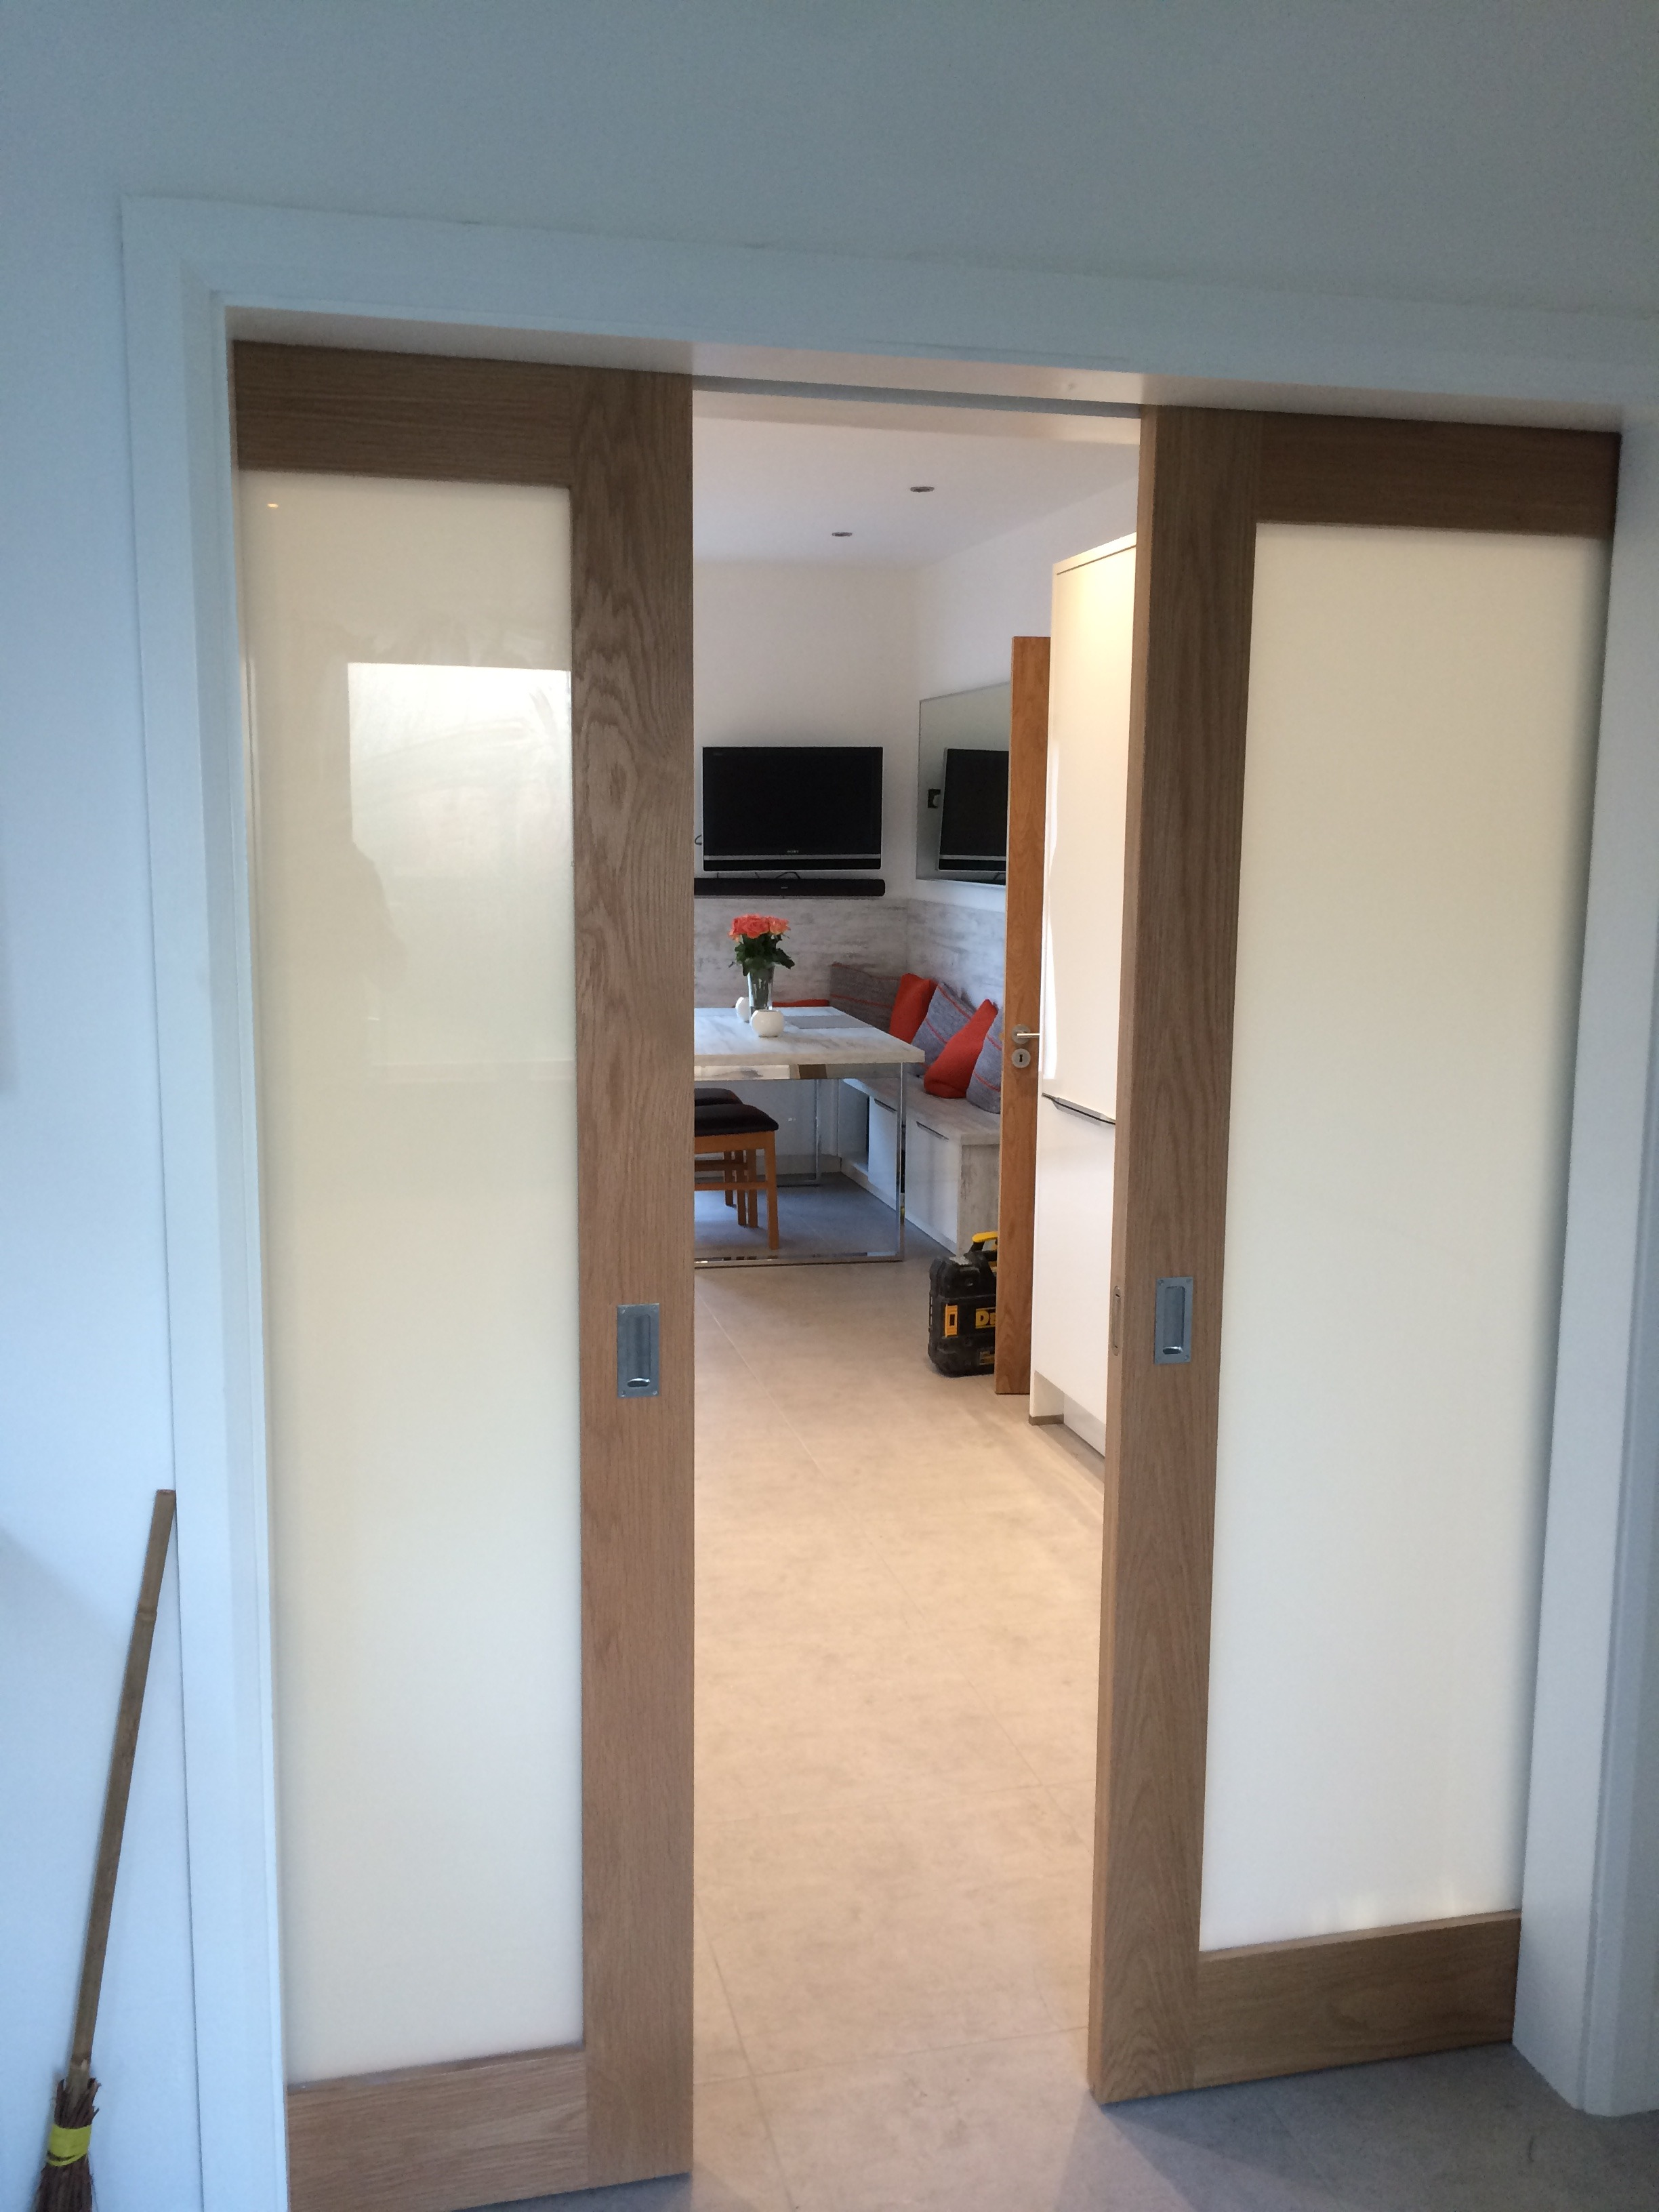 A Pocket Door is a Neat, Stylish, Sliding Door Solution